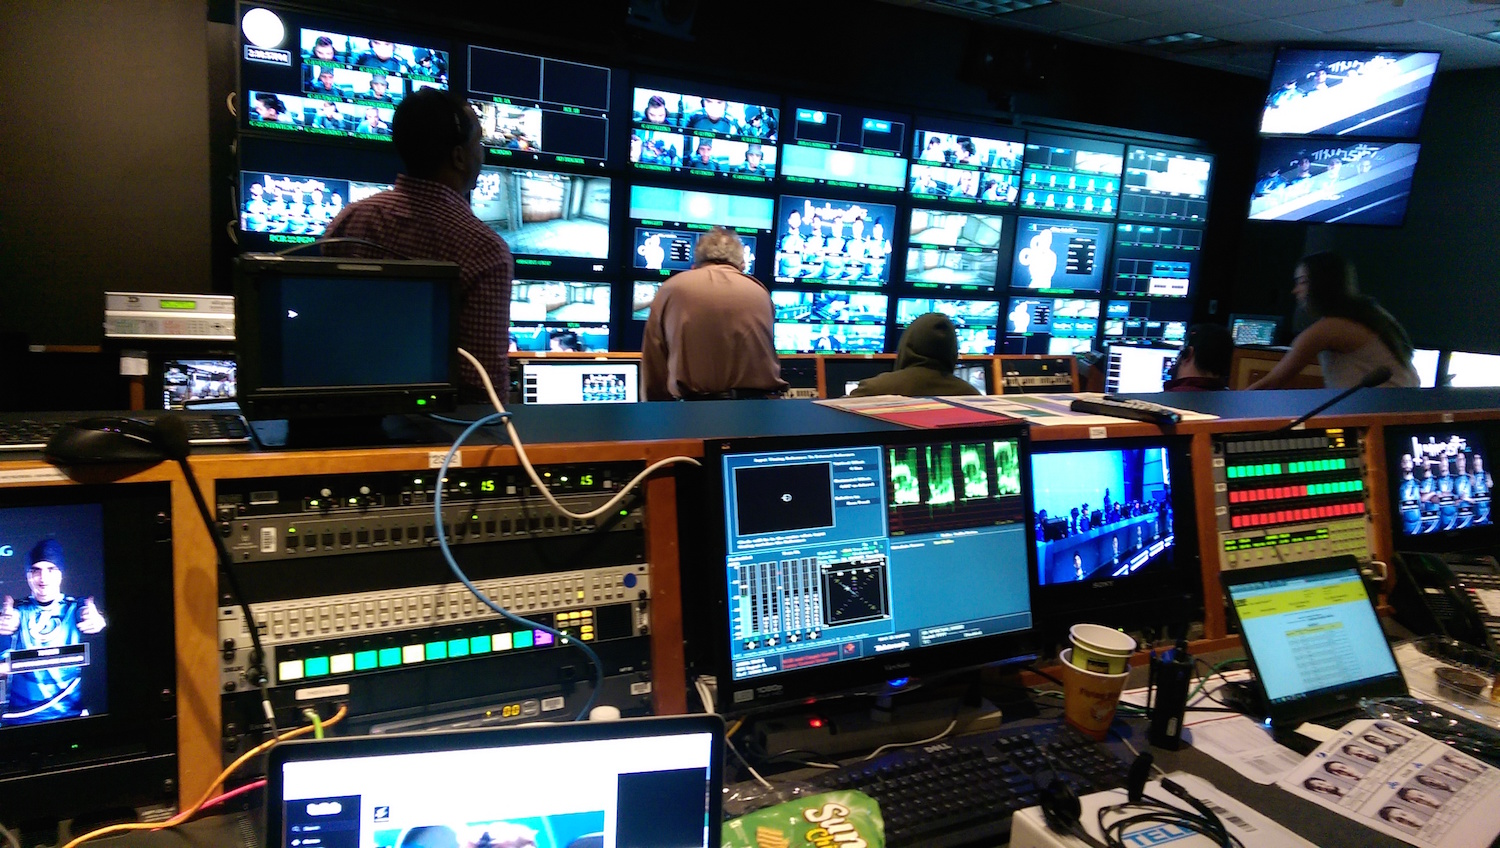 ELEAGUE Control Room